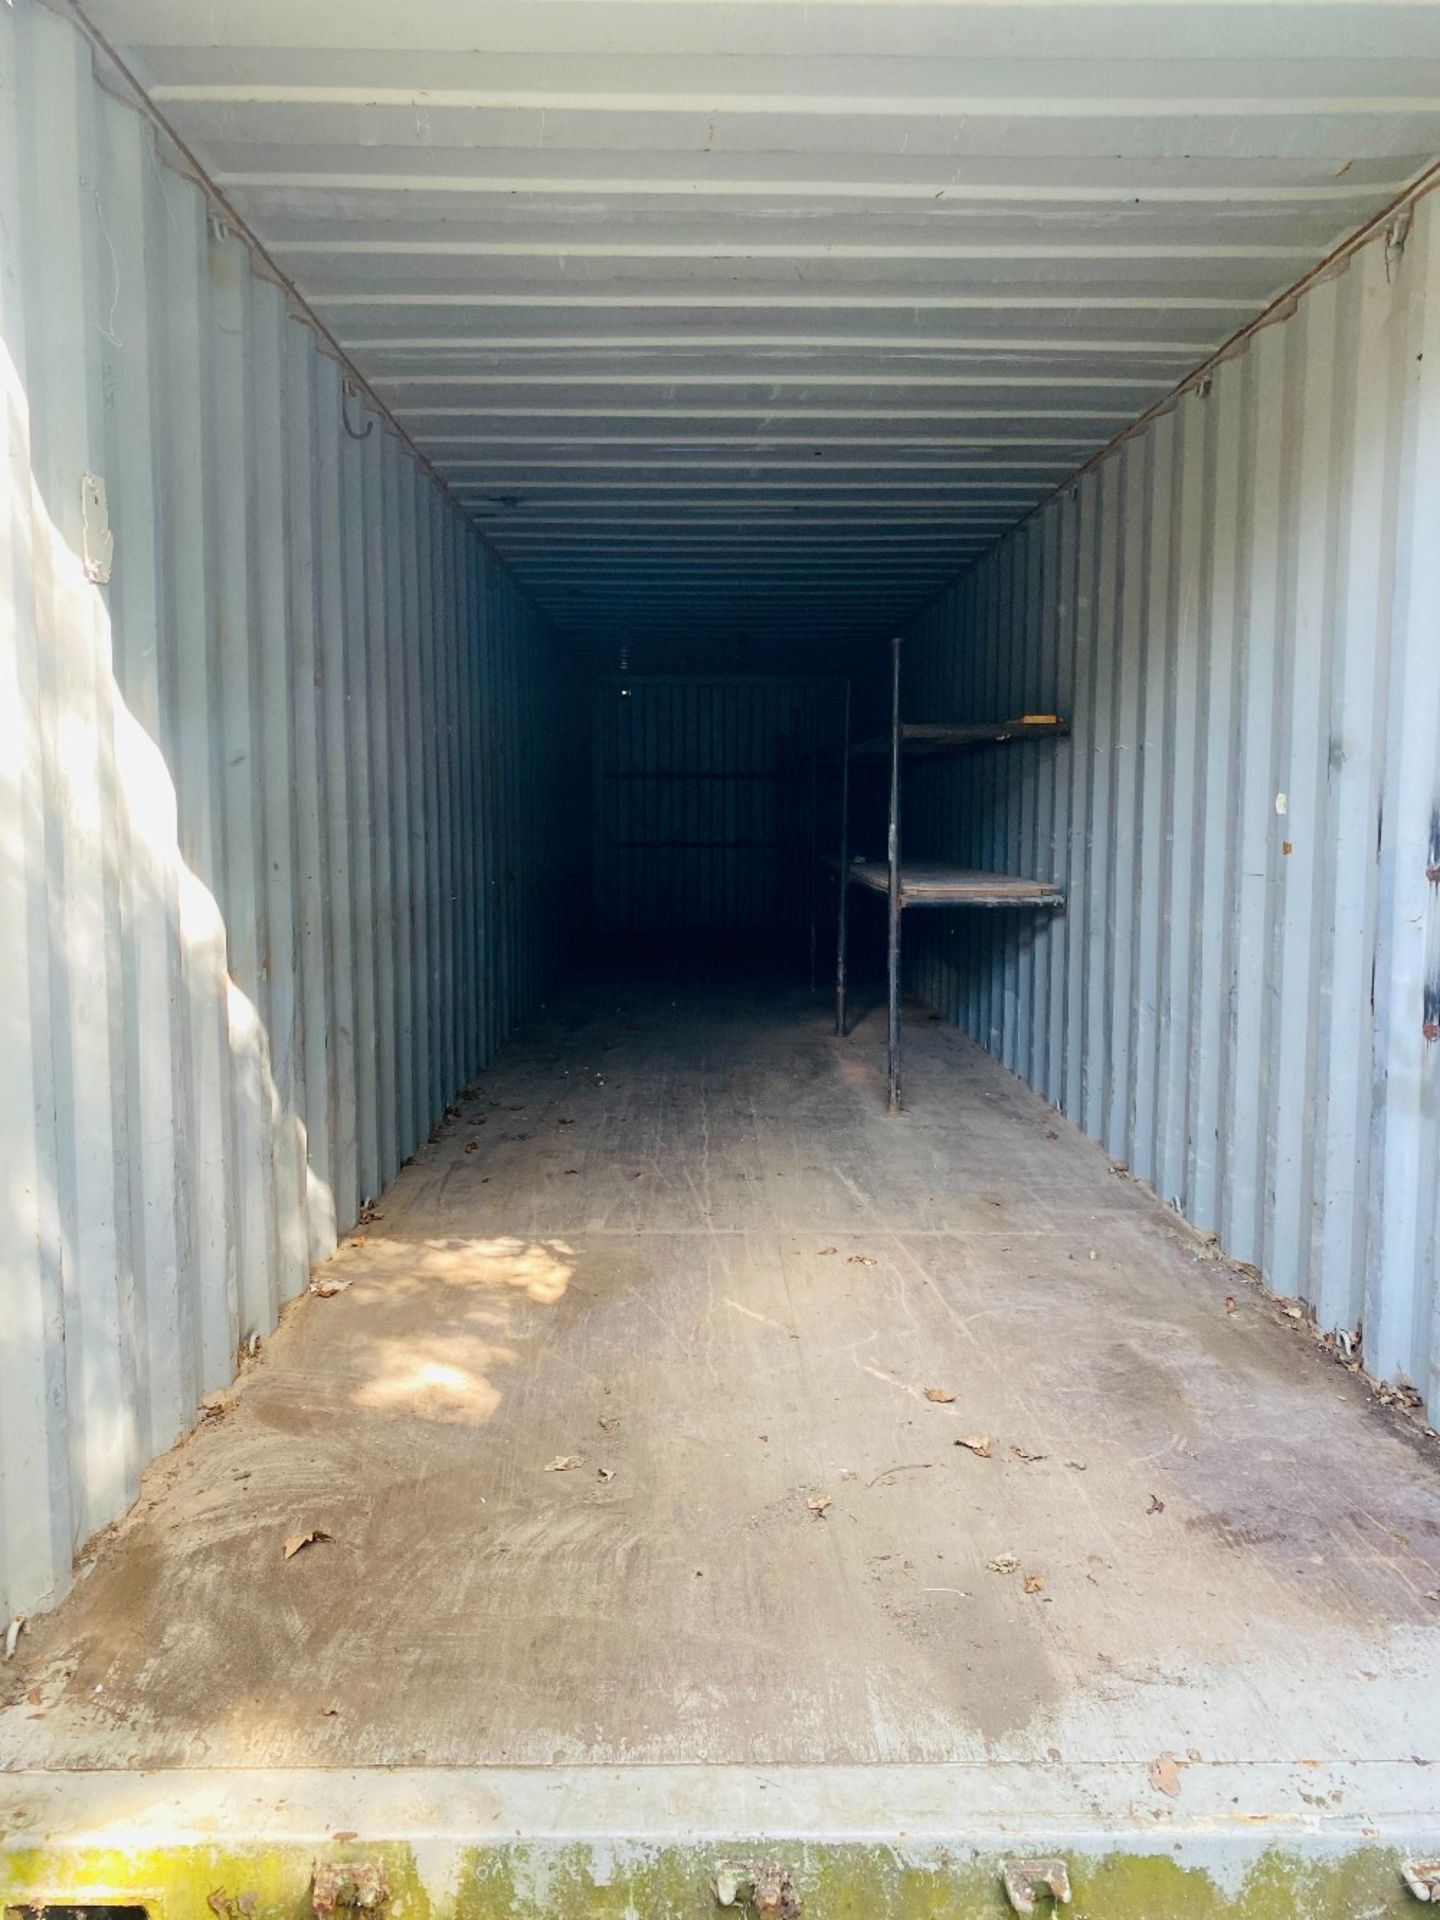 40ft Shipping Container - Image 2 of 2